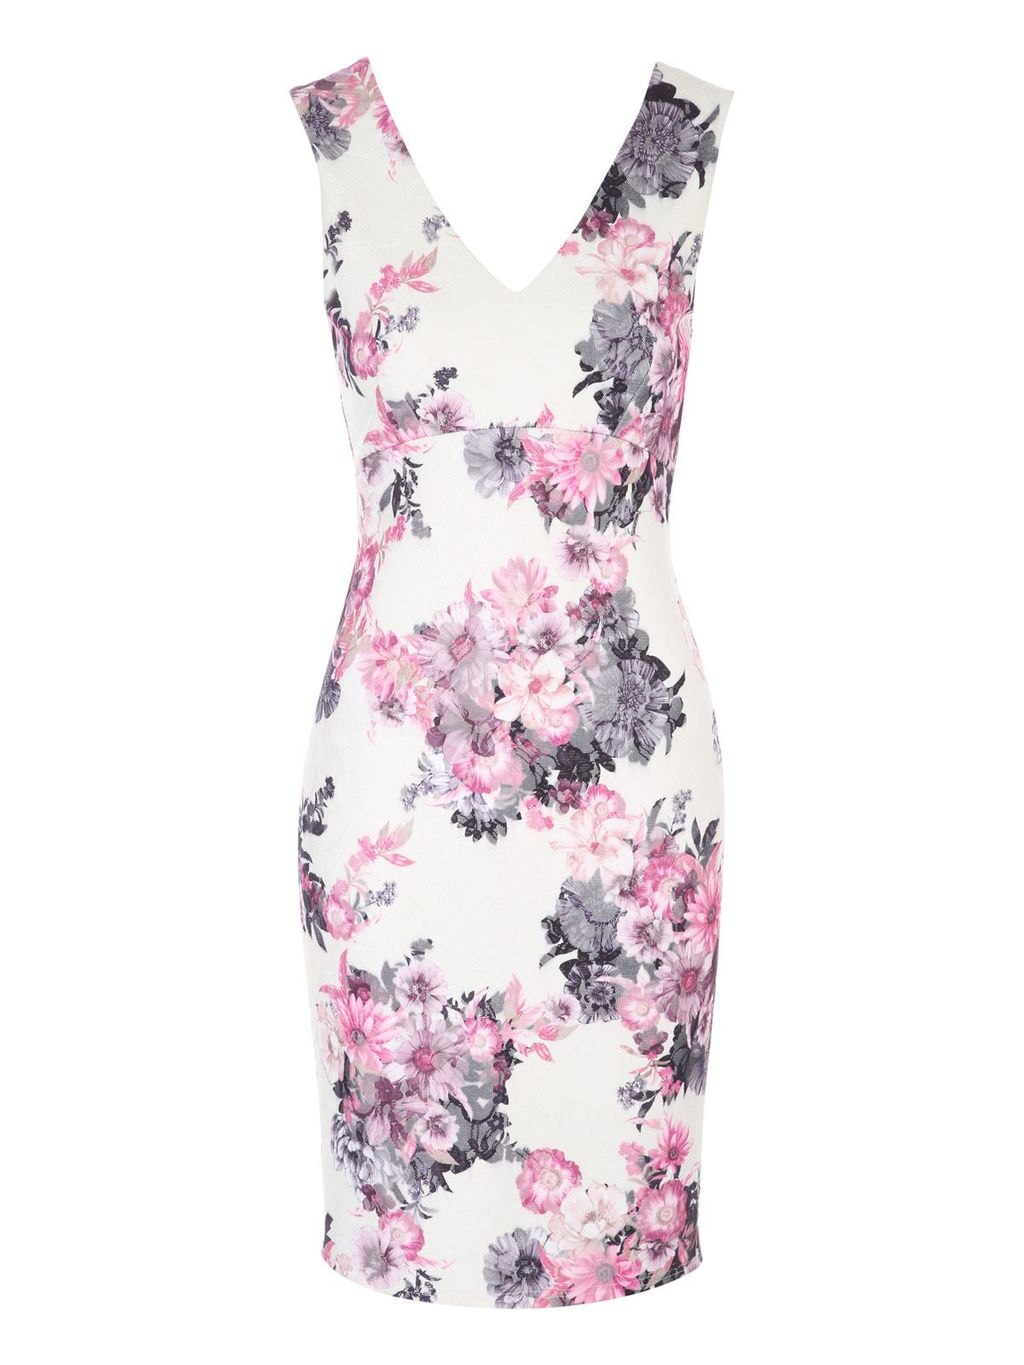 White Floral Printed Bonded Lace Dress, Multi Coloured - style: shift; neckline: low v-neck; fit: tailored/fitted; sleeve style: sleeveless; predominant colour: ivory/cream; secondary colour: lilac; occasions: evening, occasion; length: just above the knee; fibres: polyester/polyamide - 100%; sleeve length: sleeveless; pattern type: fabric; pattern: florals; texture group: woven light midweight; multicoloured: multicoloured; season: s/s 2016